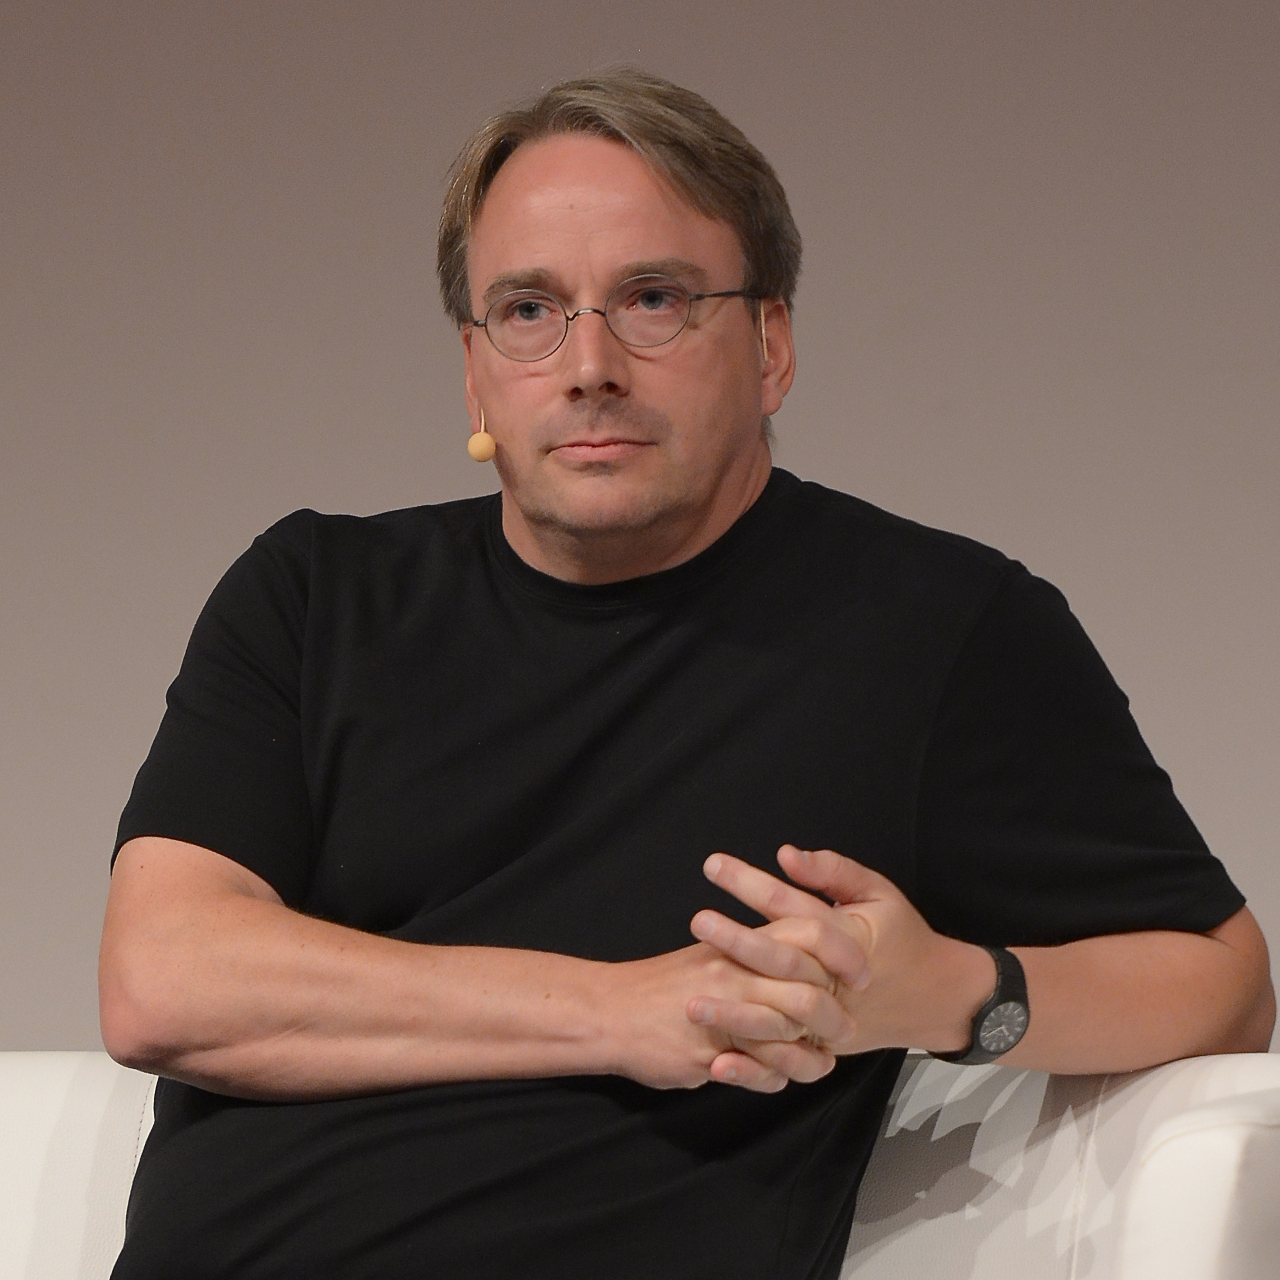 Linus-Torvald-linux